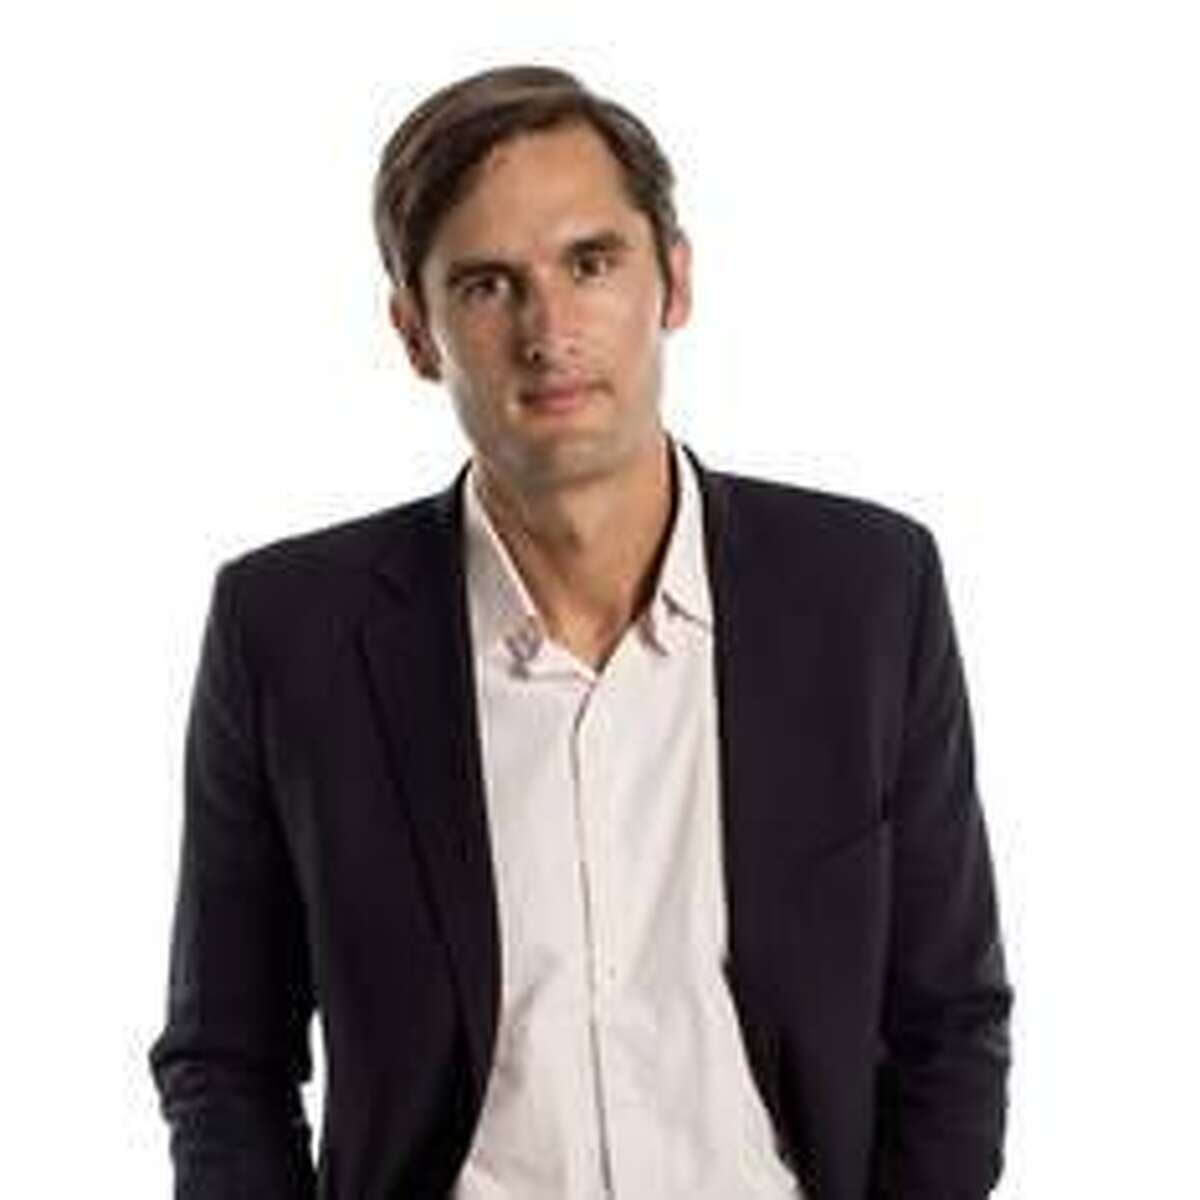 Charles Best, the founder of donorschoose